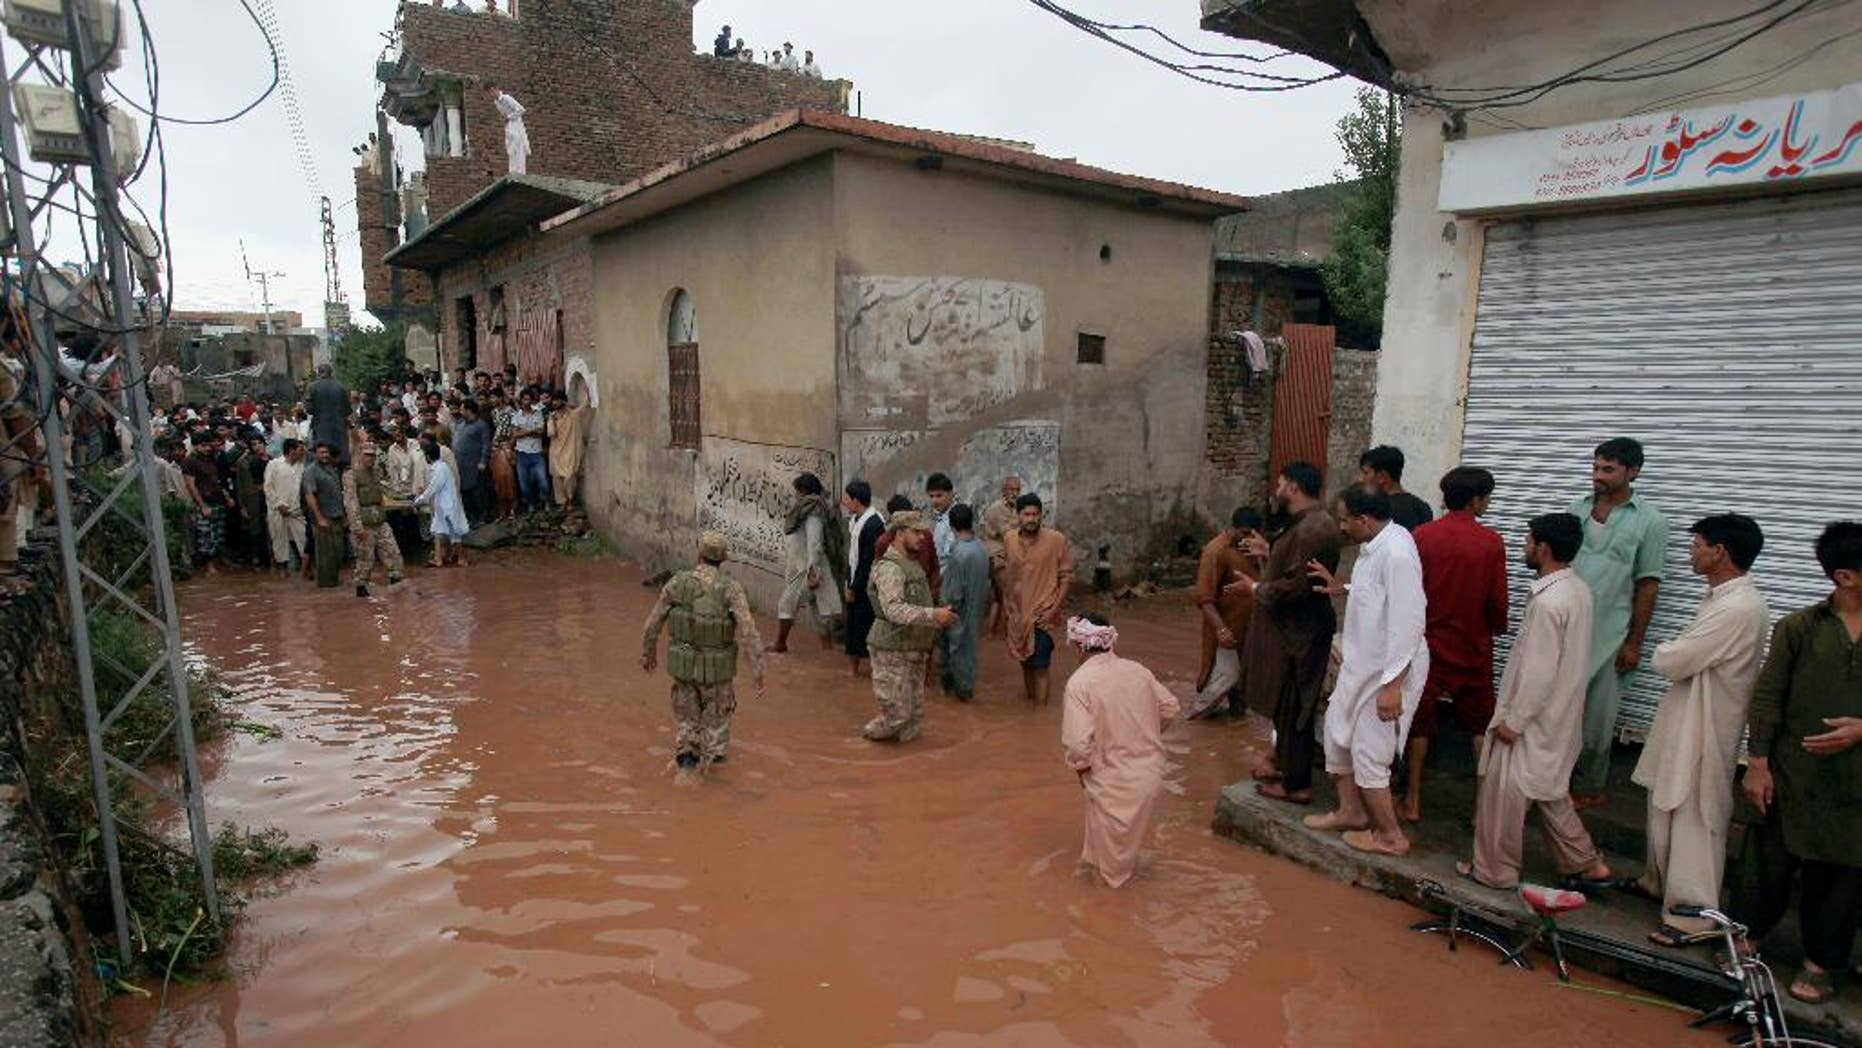 Sept. 5, 2014: Pakistani army troops rescue local residents from a flooded area caused by heavy rains on the outskirts of Islamabad, Pakistan.